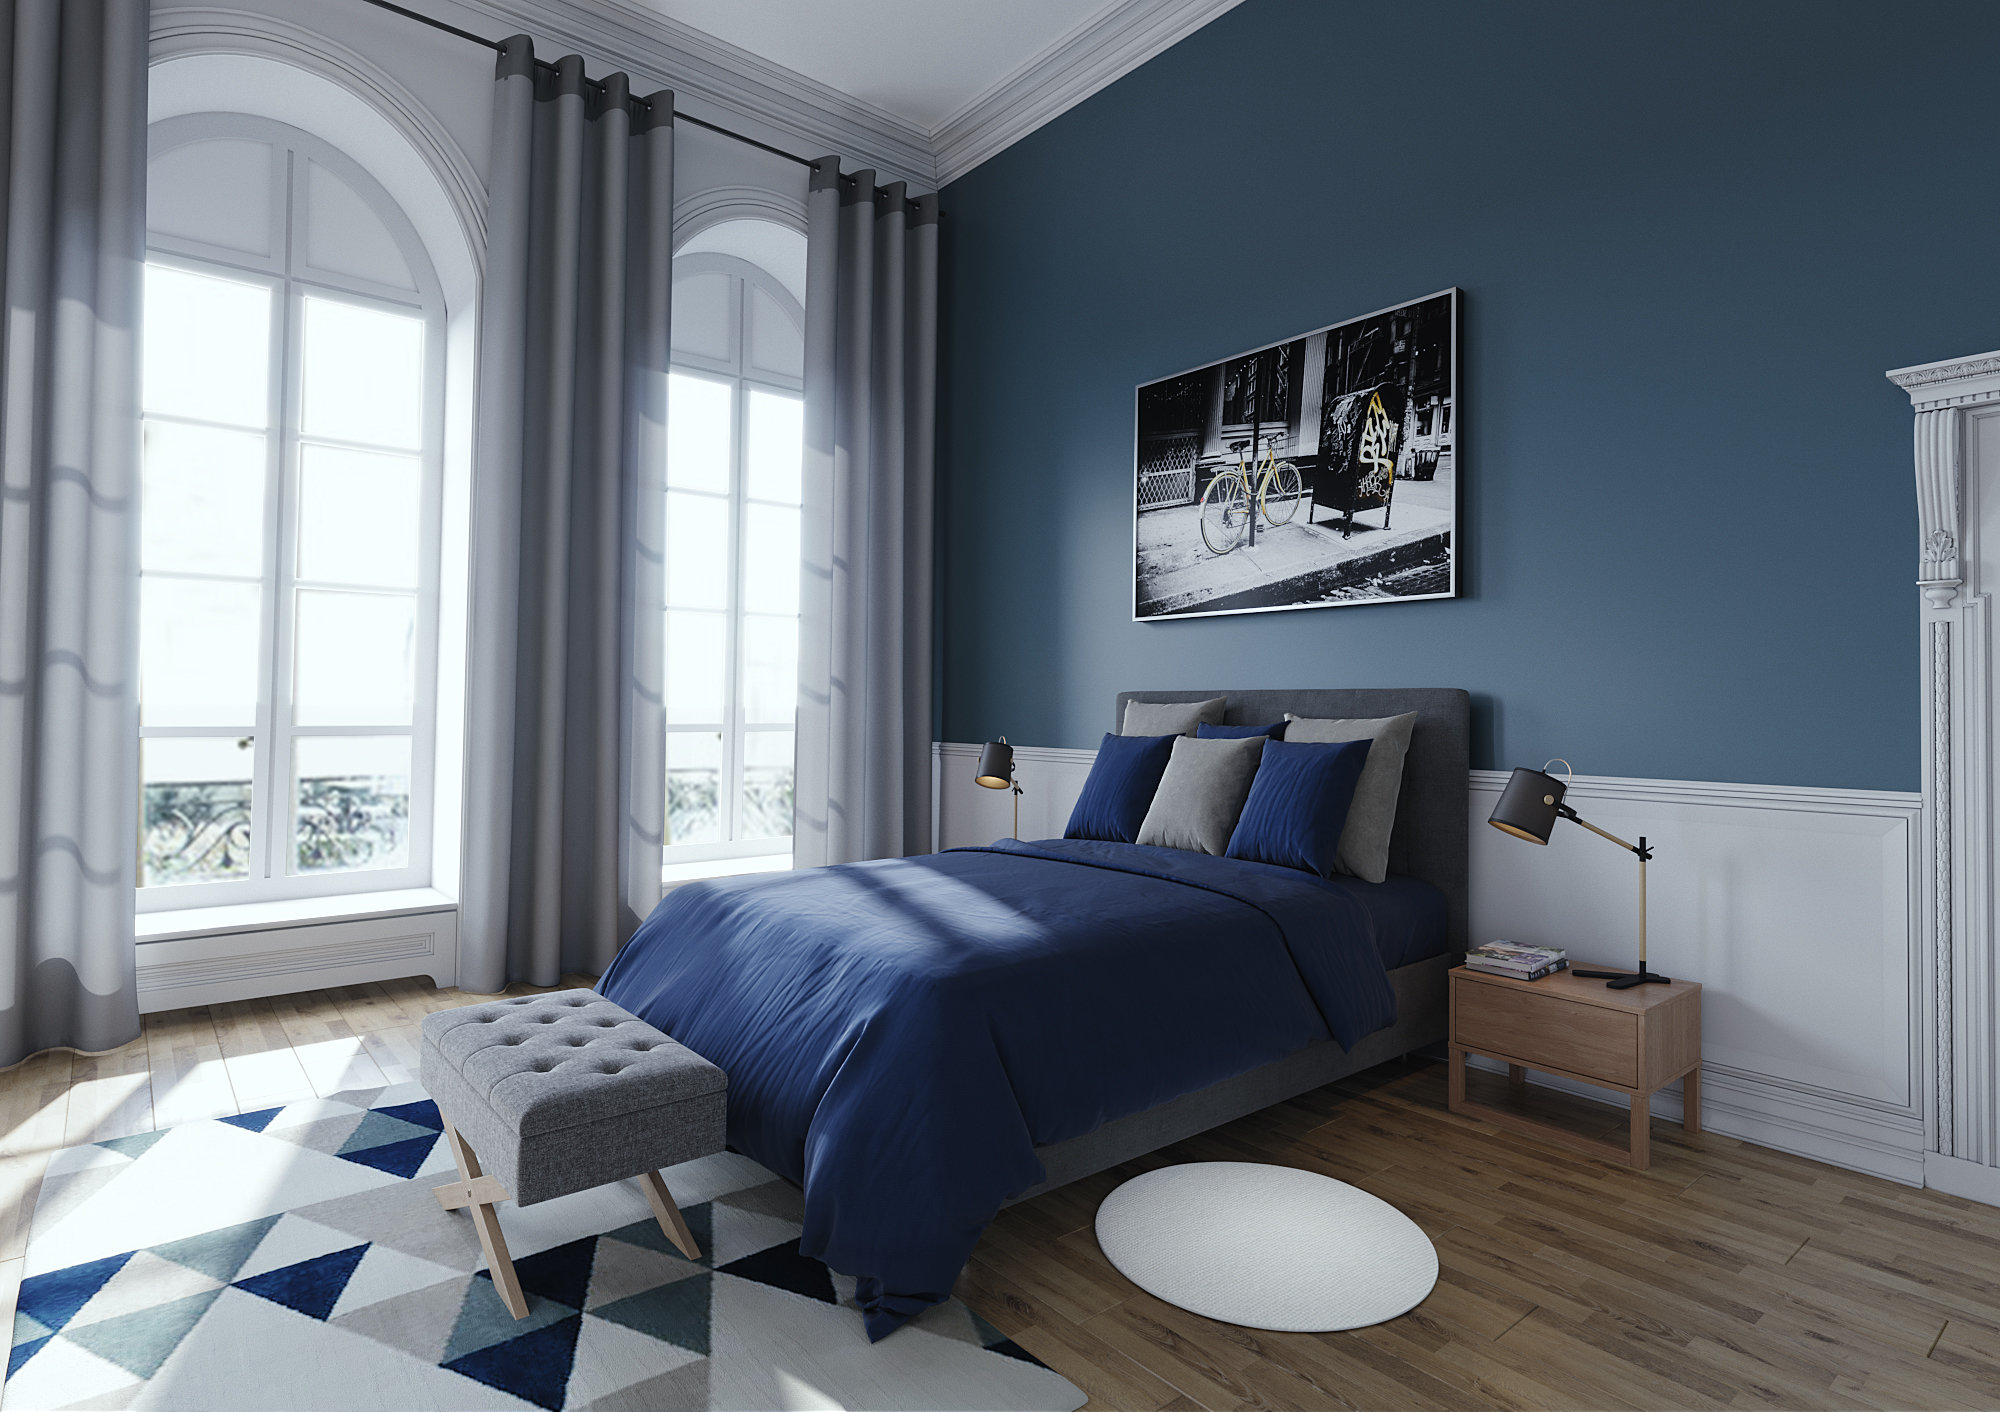 chambre scandinave classique blanche bleue grise inspiration style scandinave. Black Bedroom Furniture Sets. Home Design Ideas